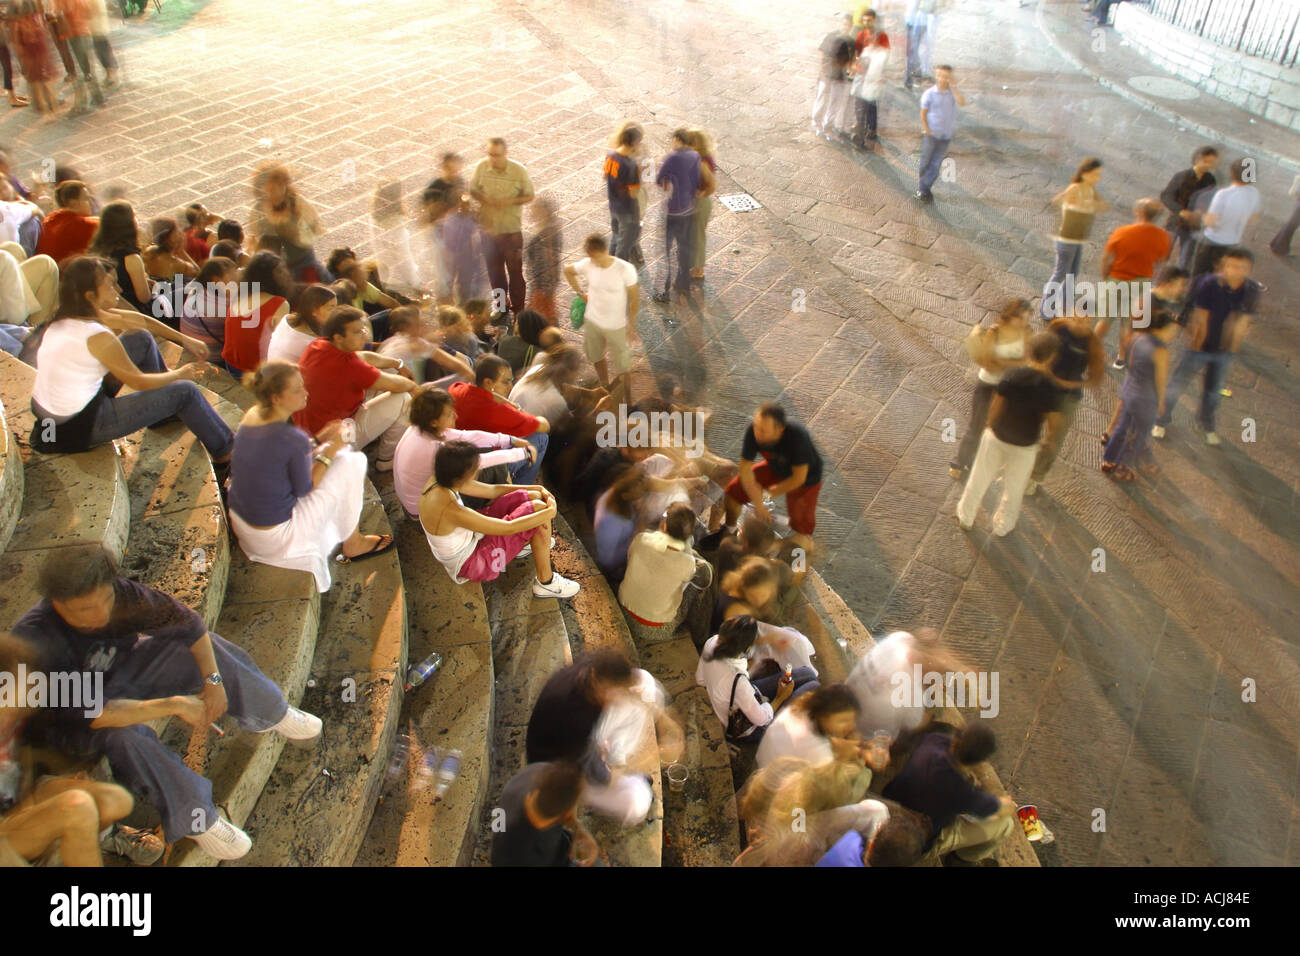 People milling about during the Umbria Jazz festival in Perugia Umbria Italy - Stock Image